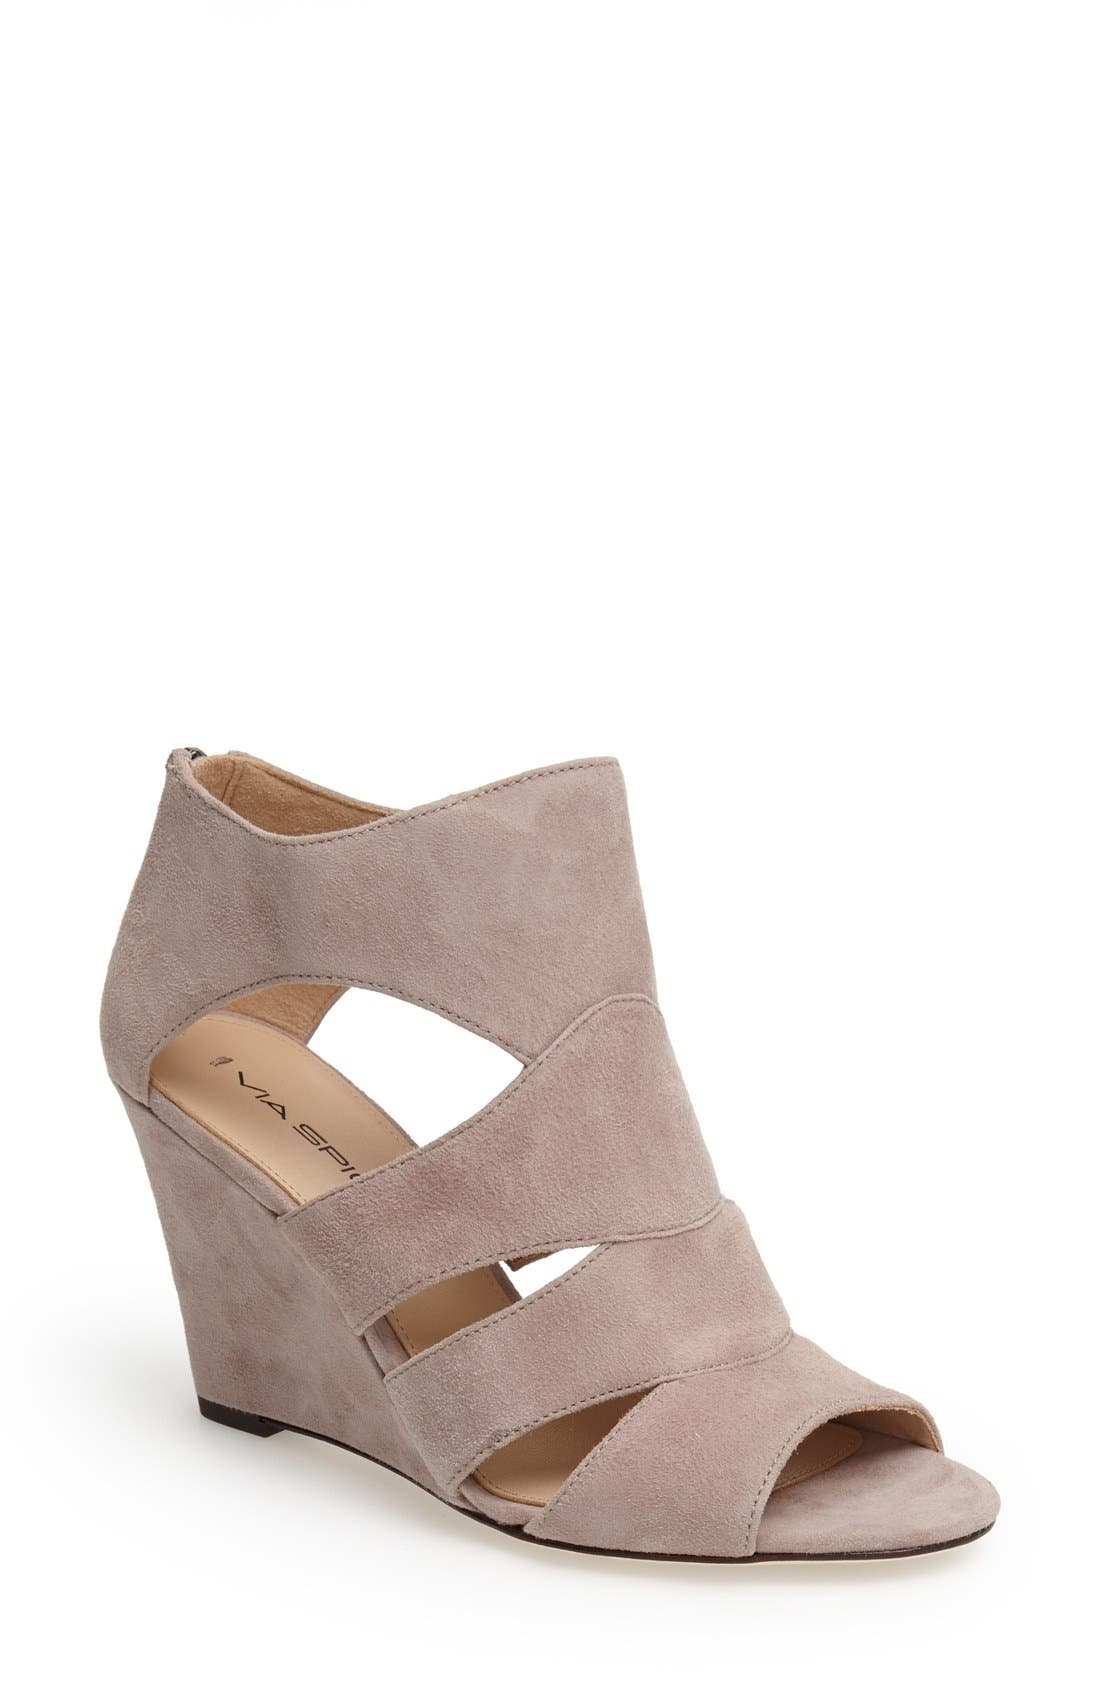 Main Image - Via Spiga 'Fion' Wedge Sandal (Women)